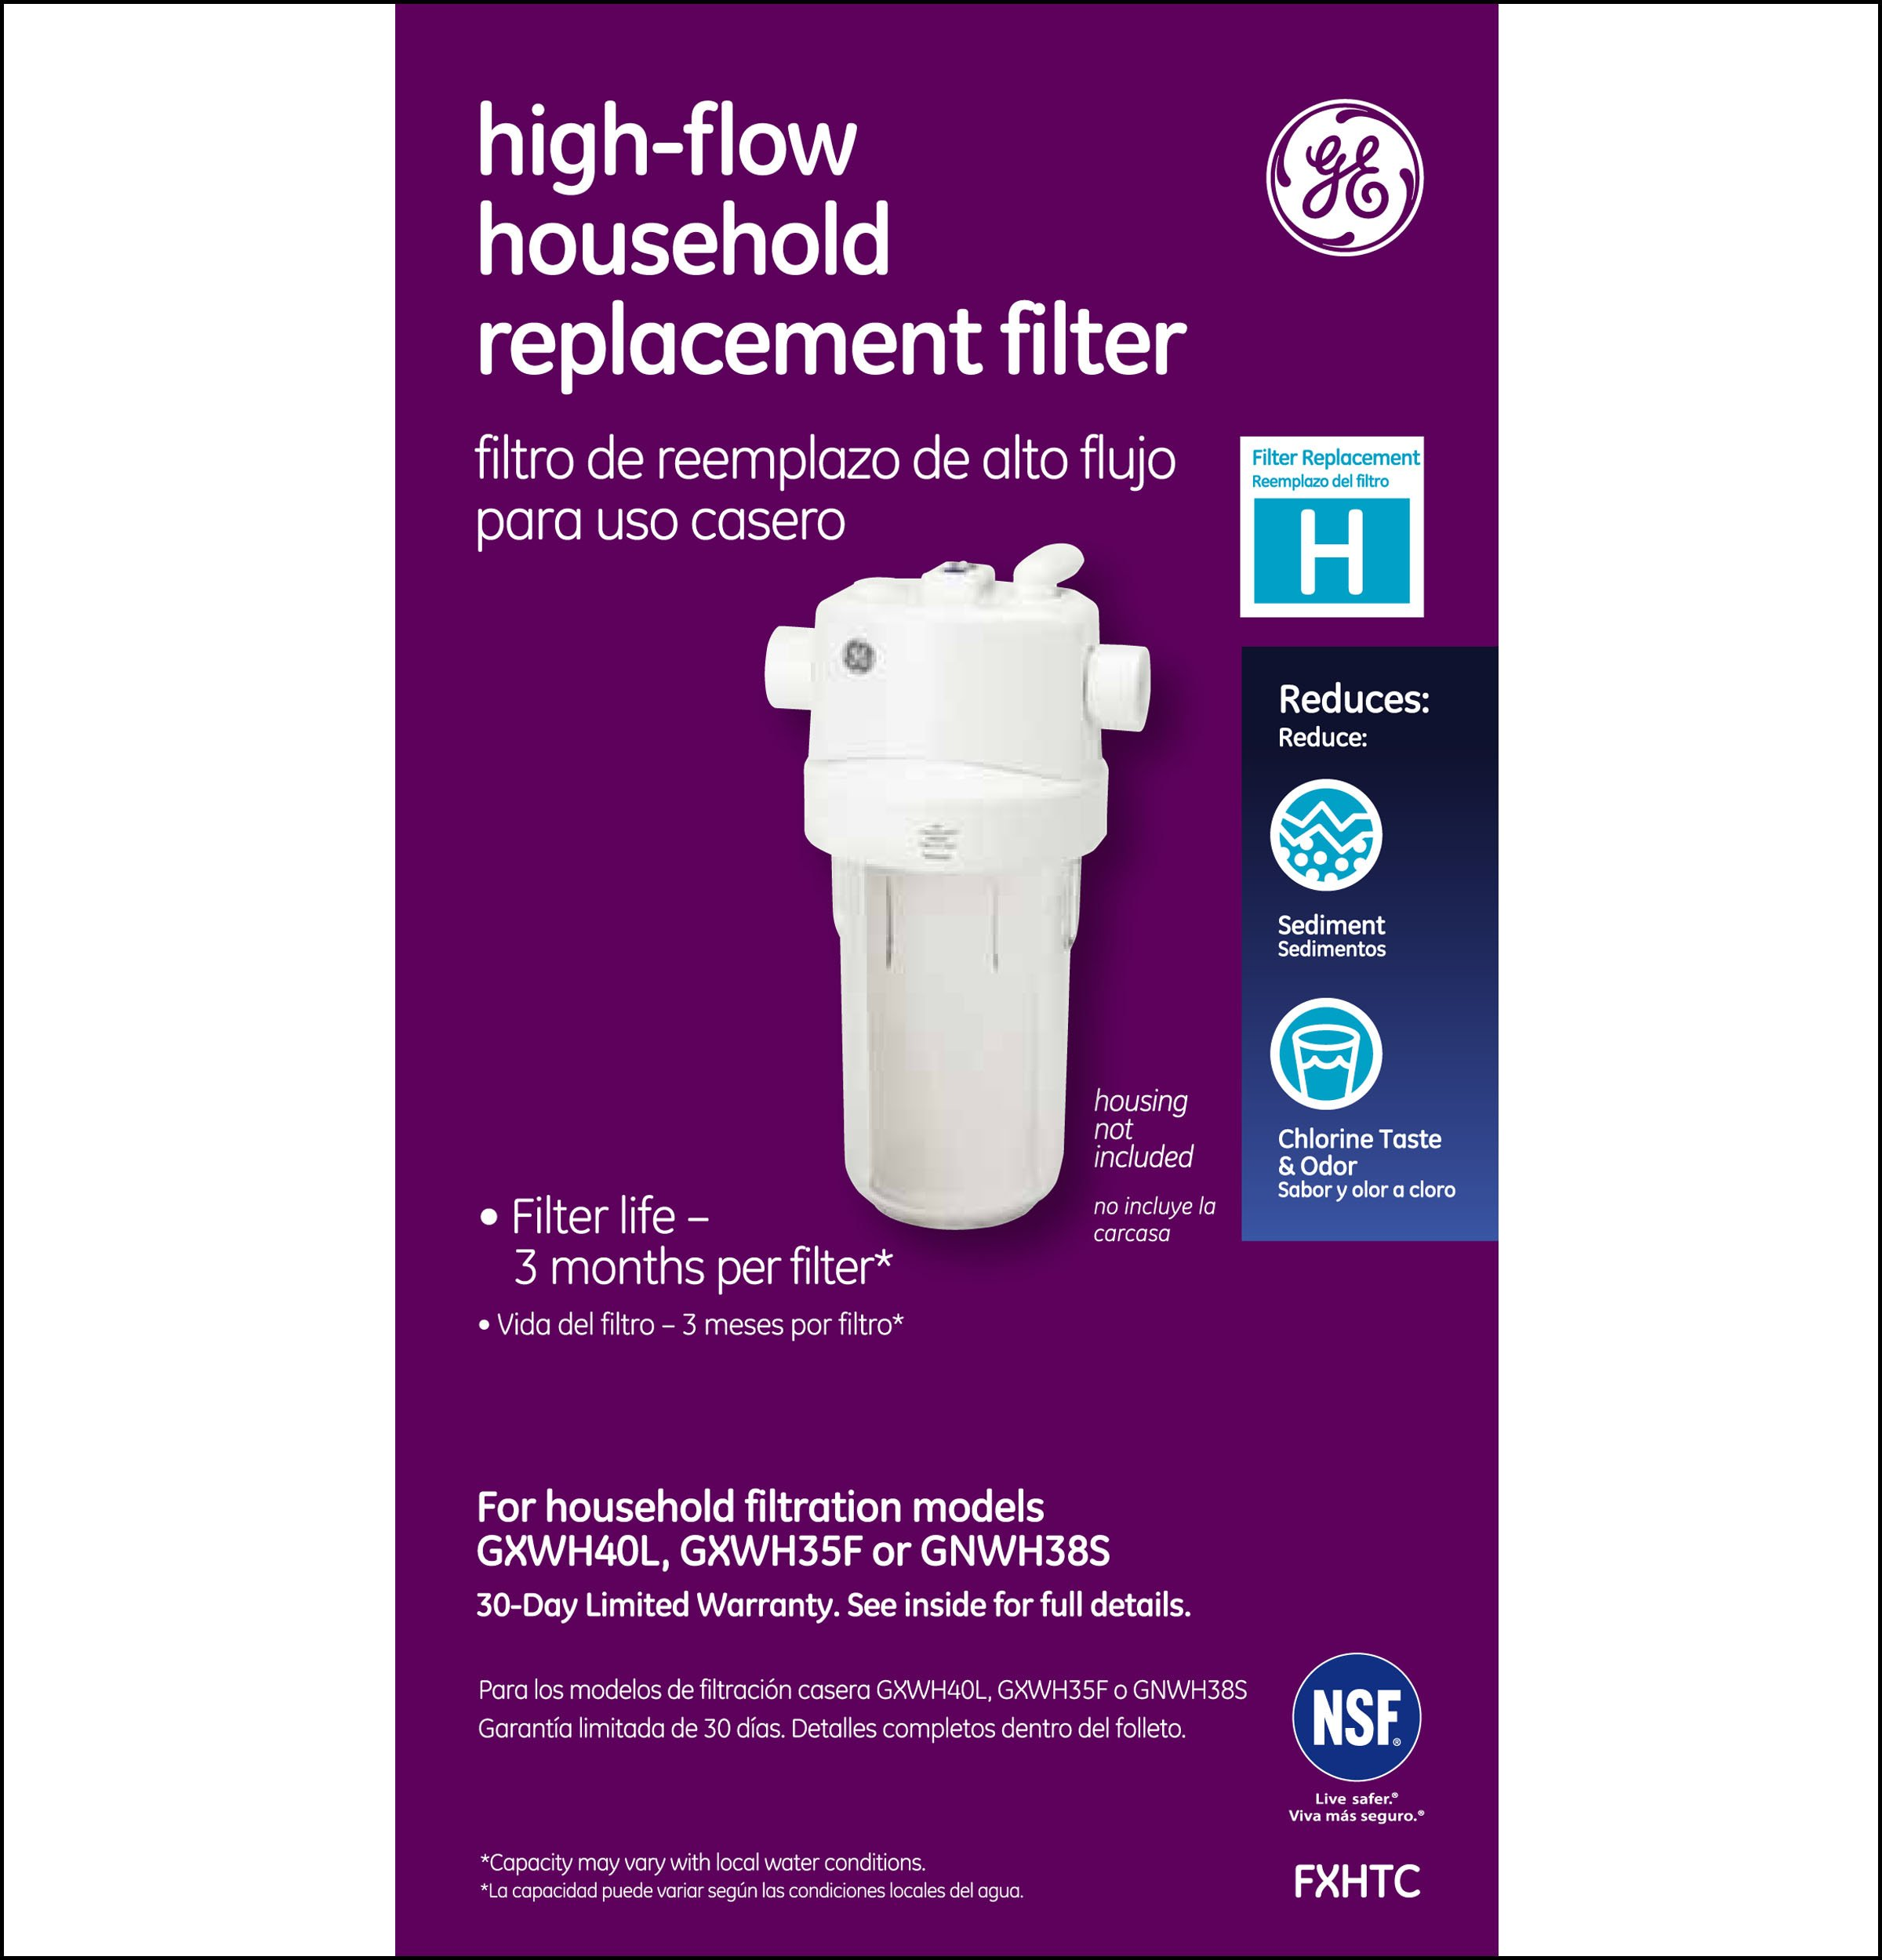 GE FXHTC Whole Home System Replacement Filter by GE